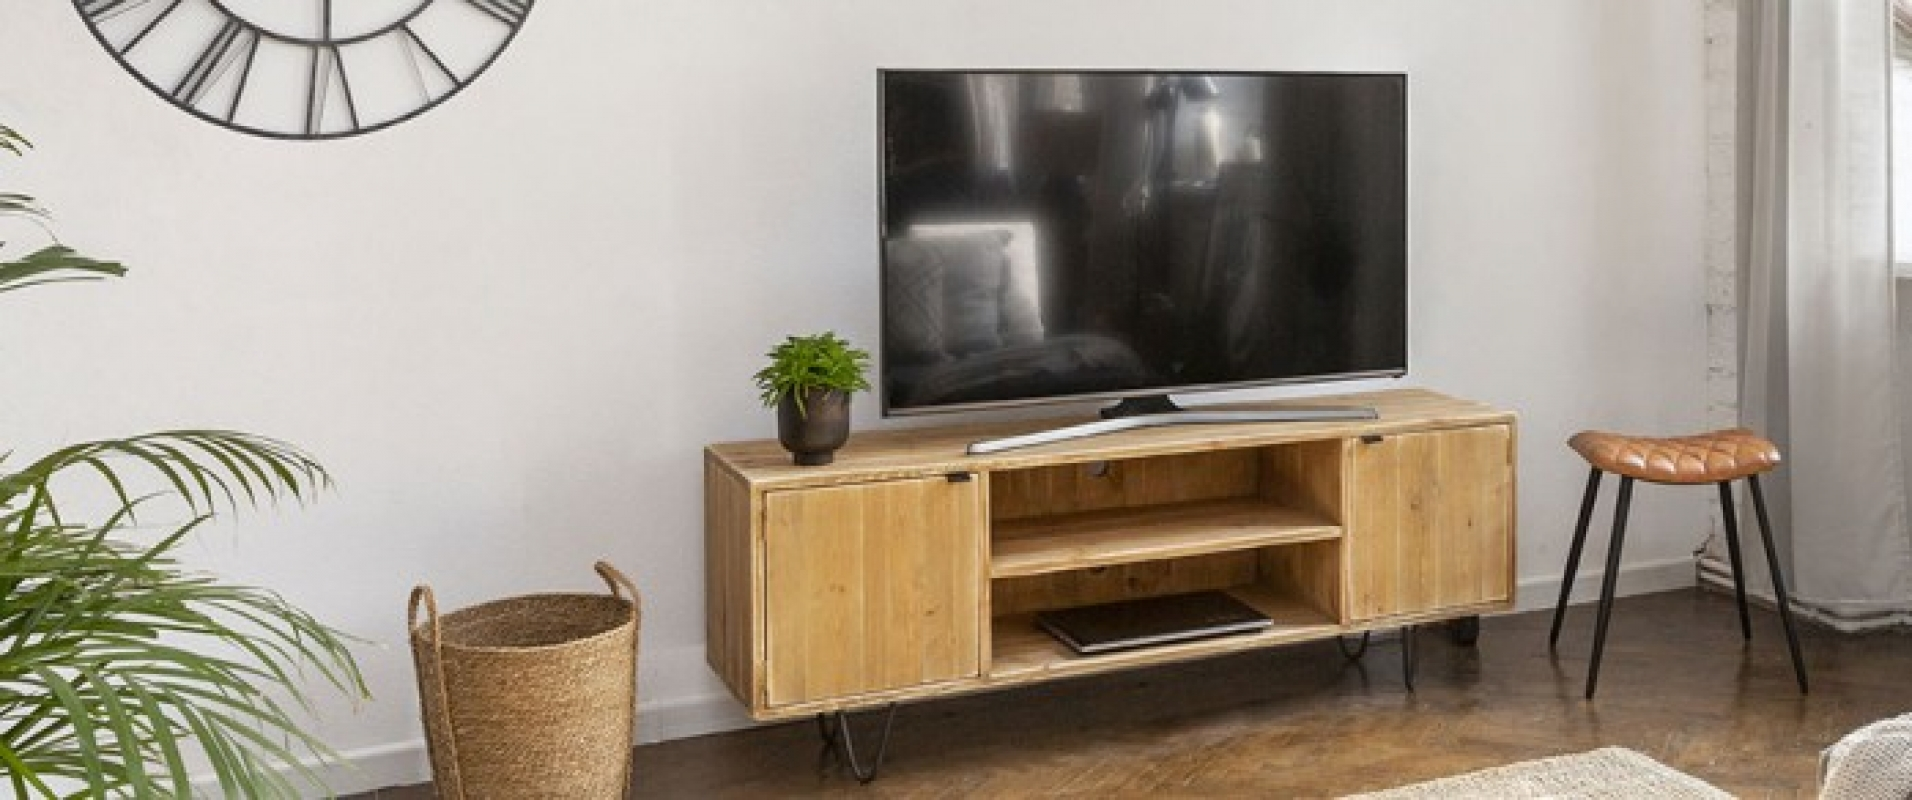 Why choose a solid pine furniture